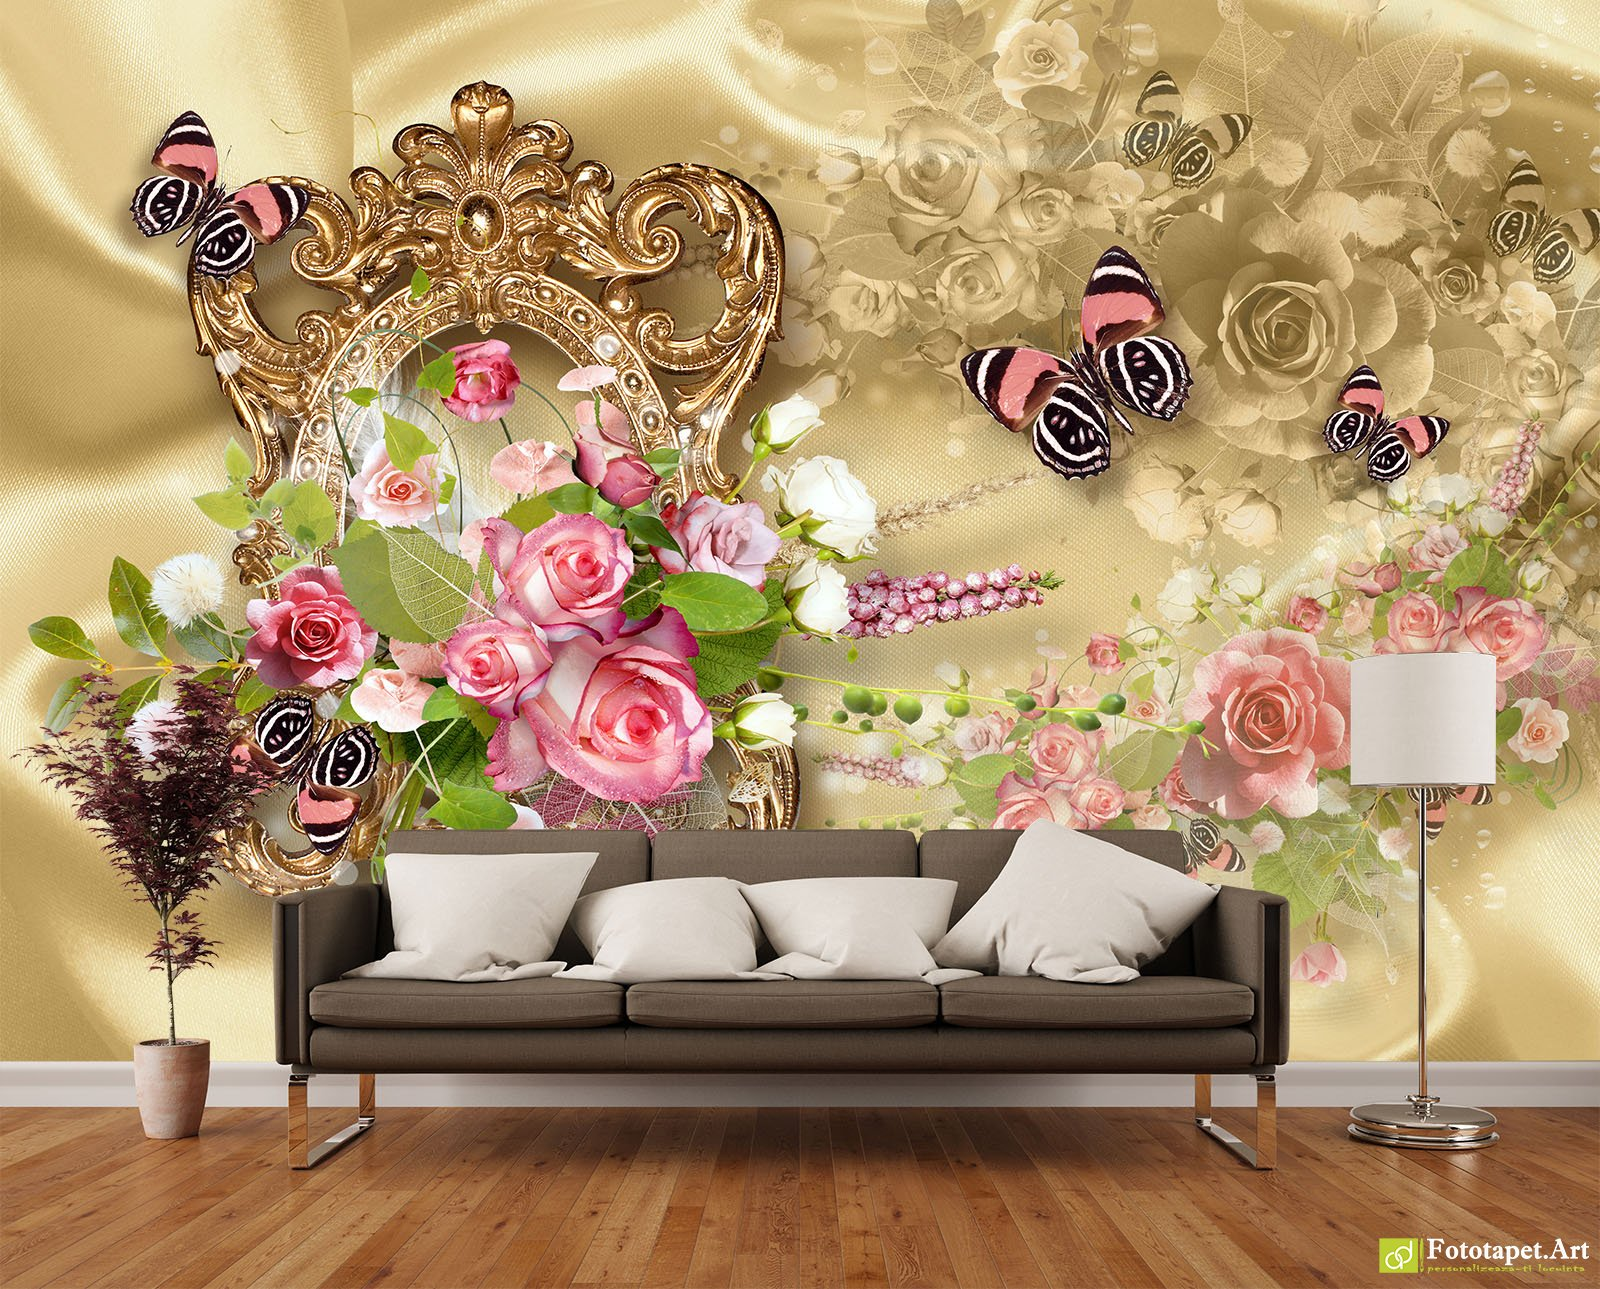 Retro Wallpaper & Vintage Wall Murals - A bouquet of roses and ...